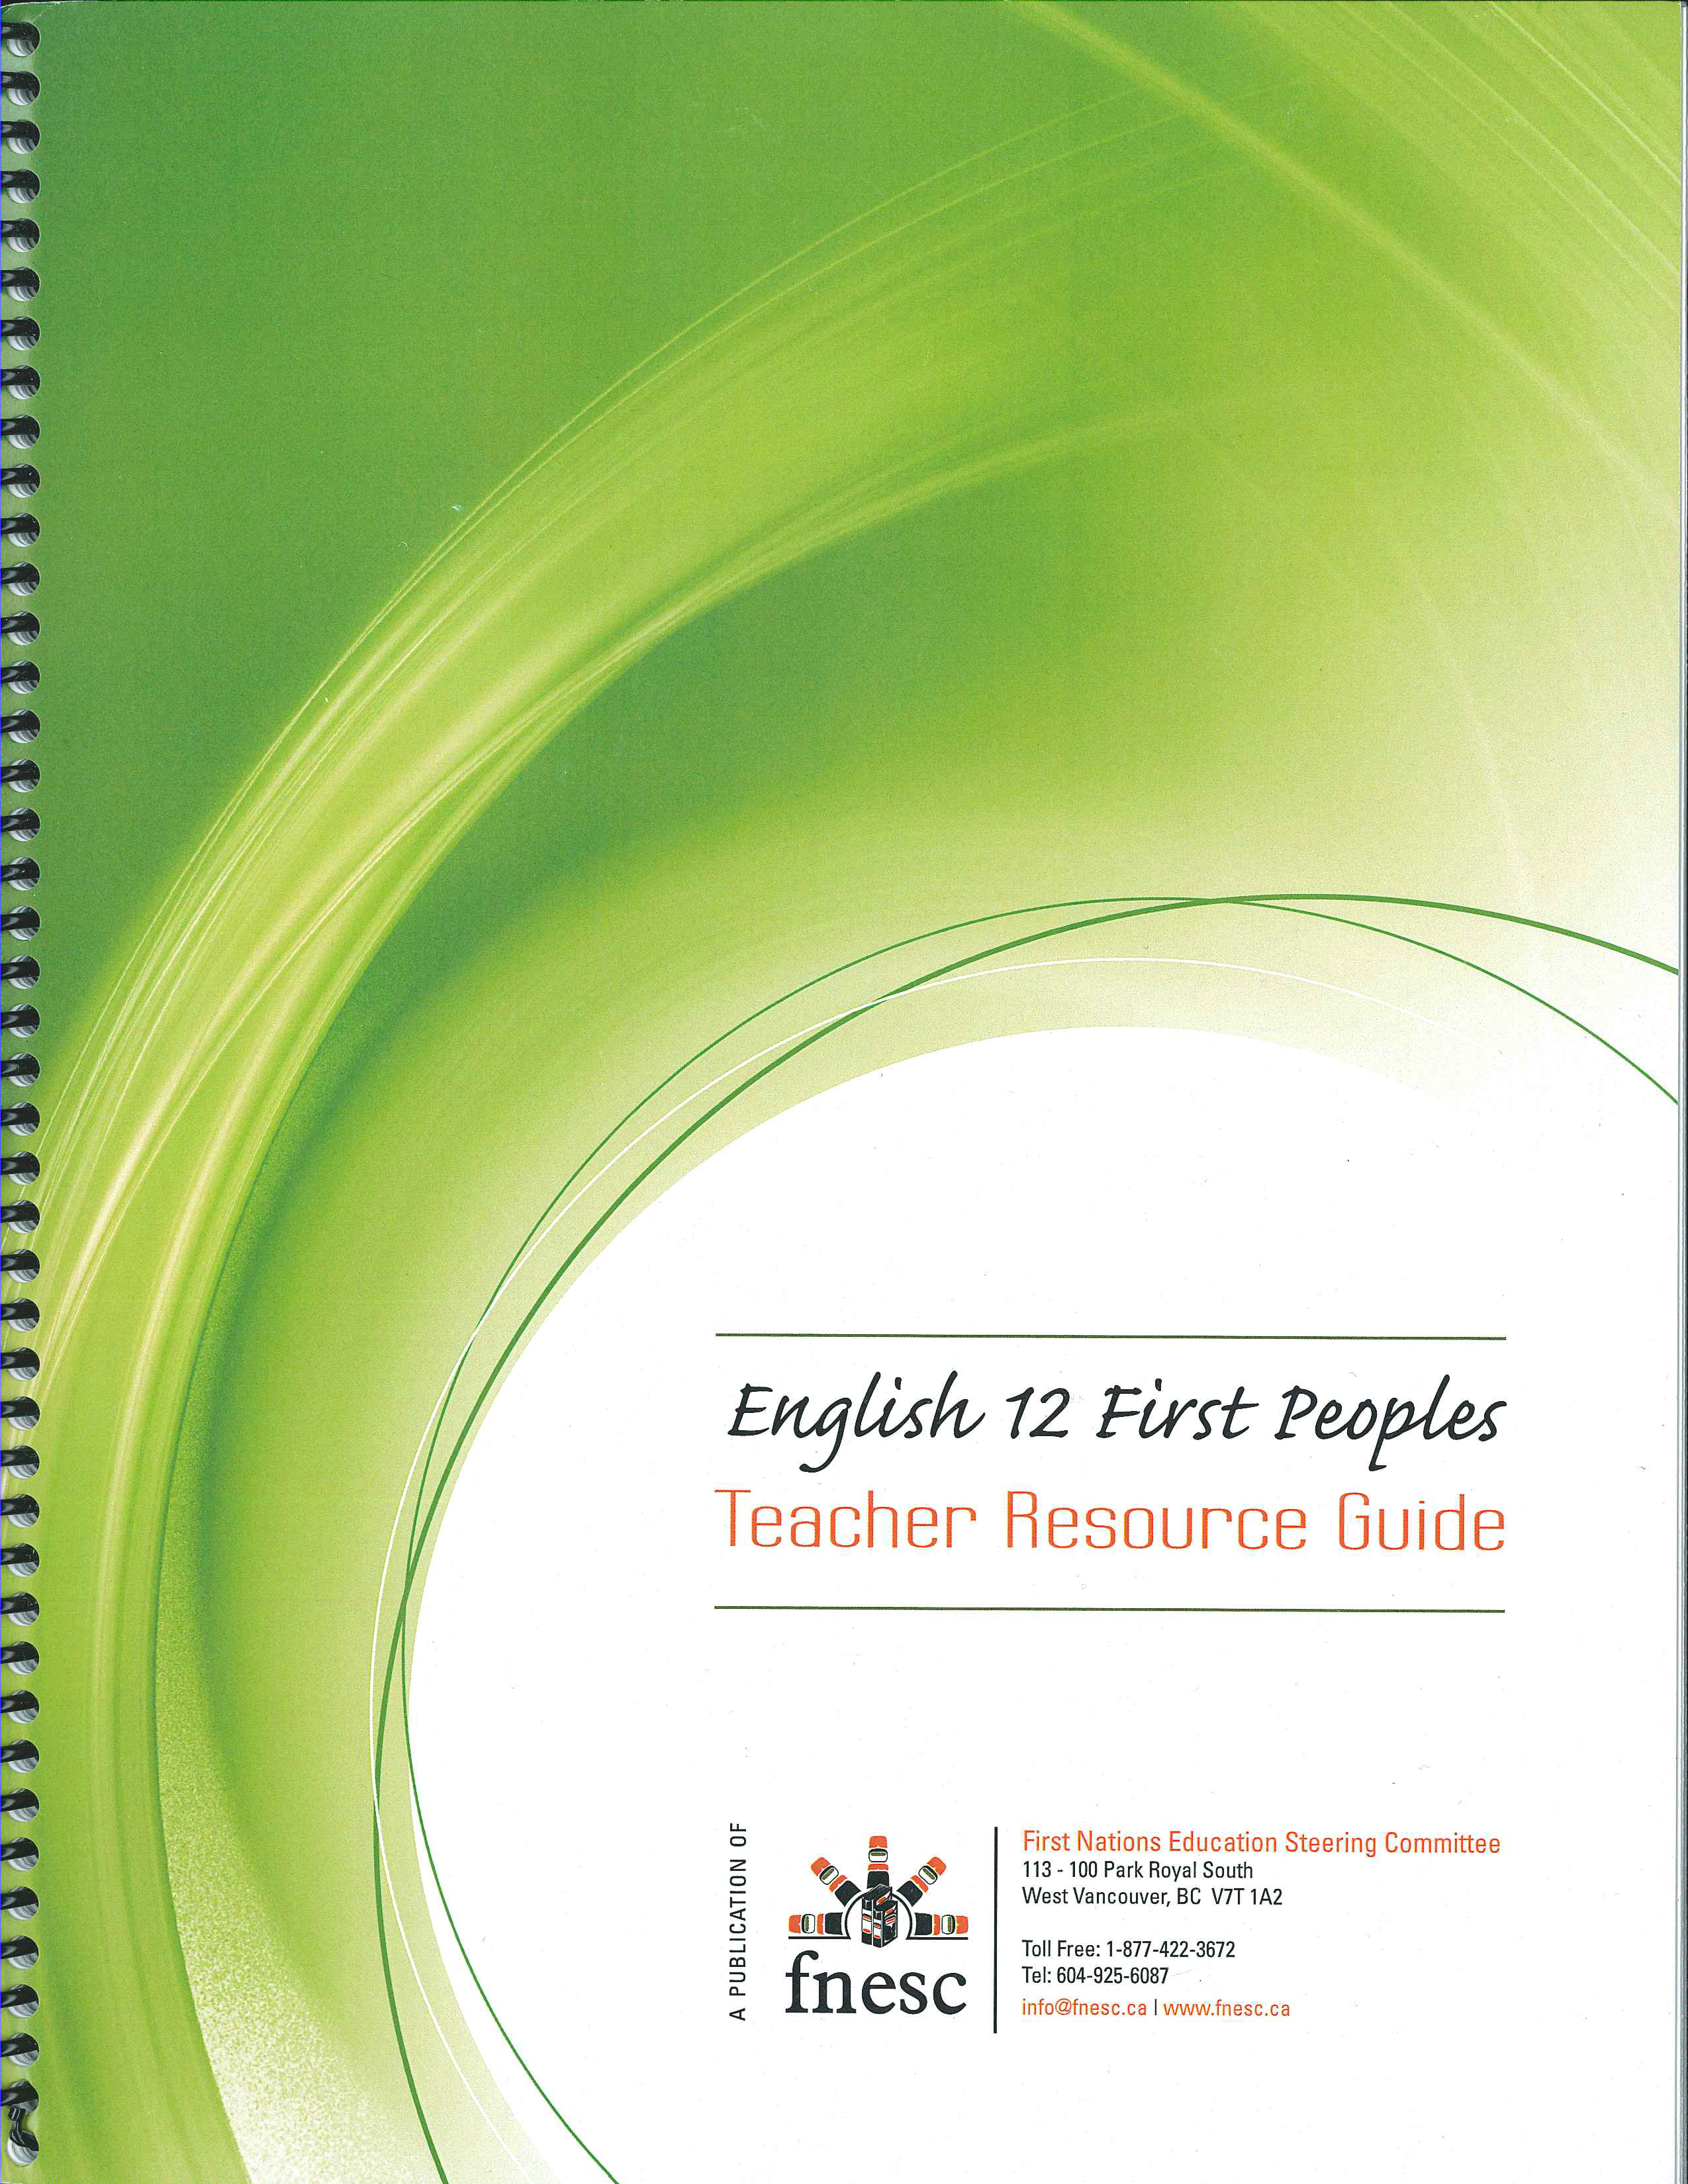 Free PDF. This document is designed to provide support for teachers of English 12 First Peoples.  It has been developed by the First Nations Education Steering Committee.